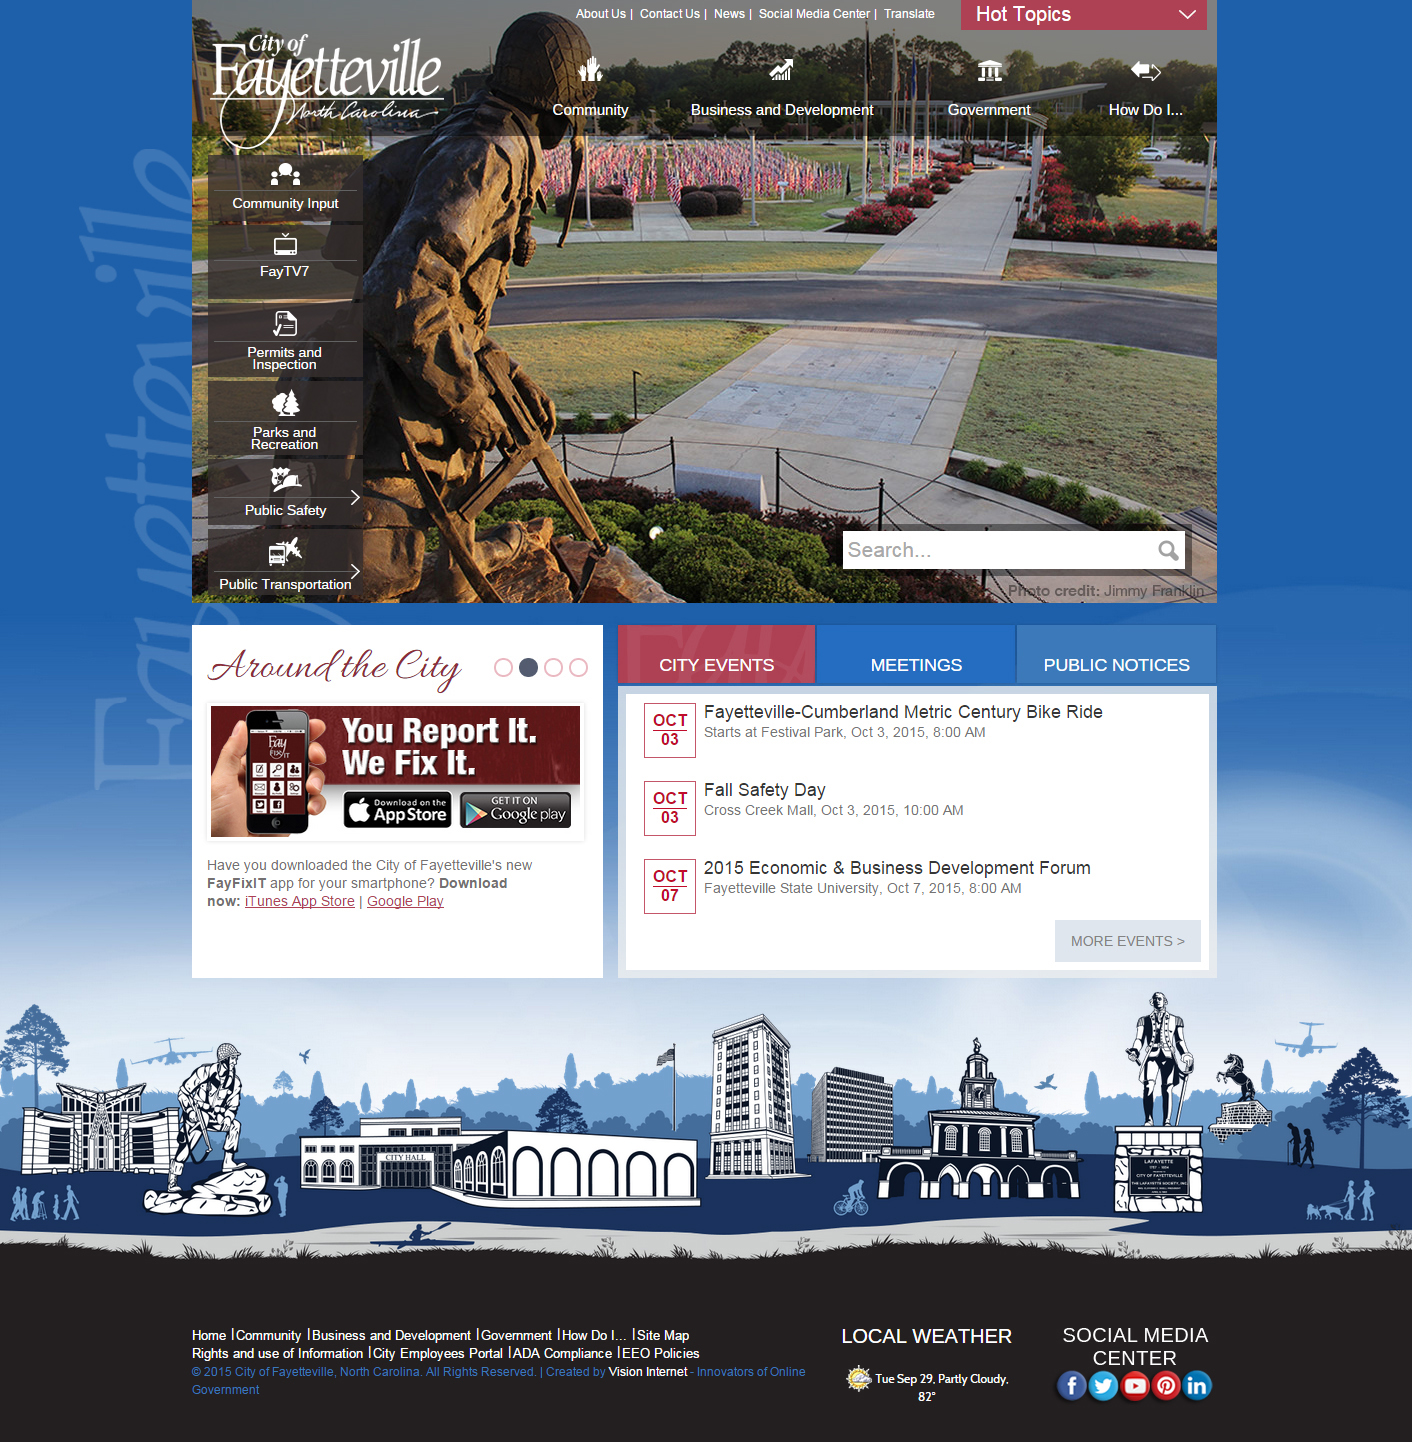 City Launches New Website to Improve Information Sharing to Citizens